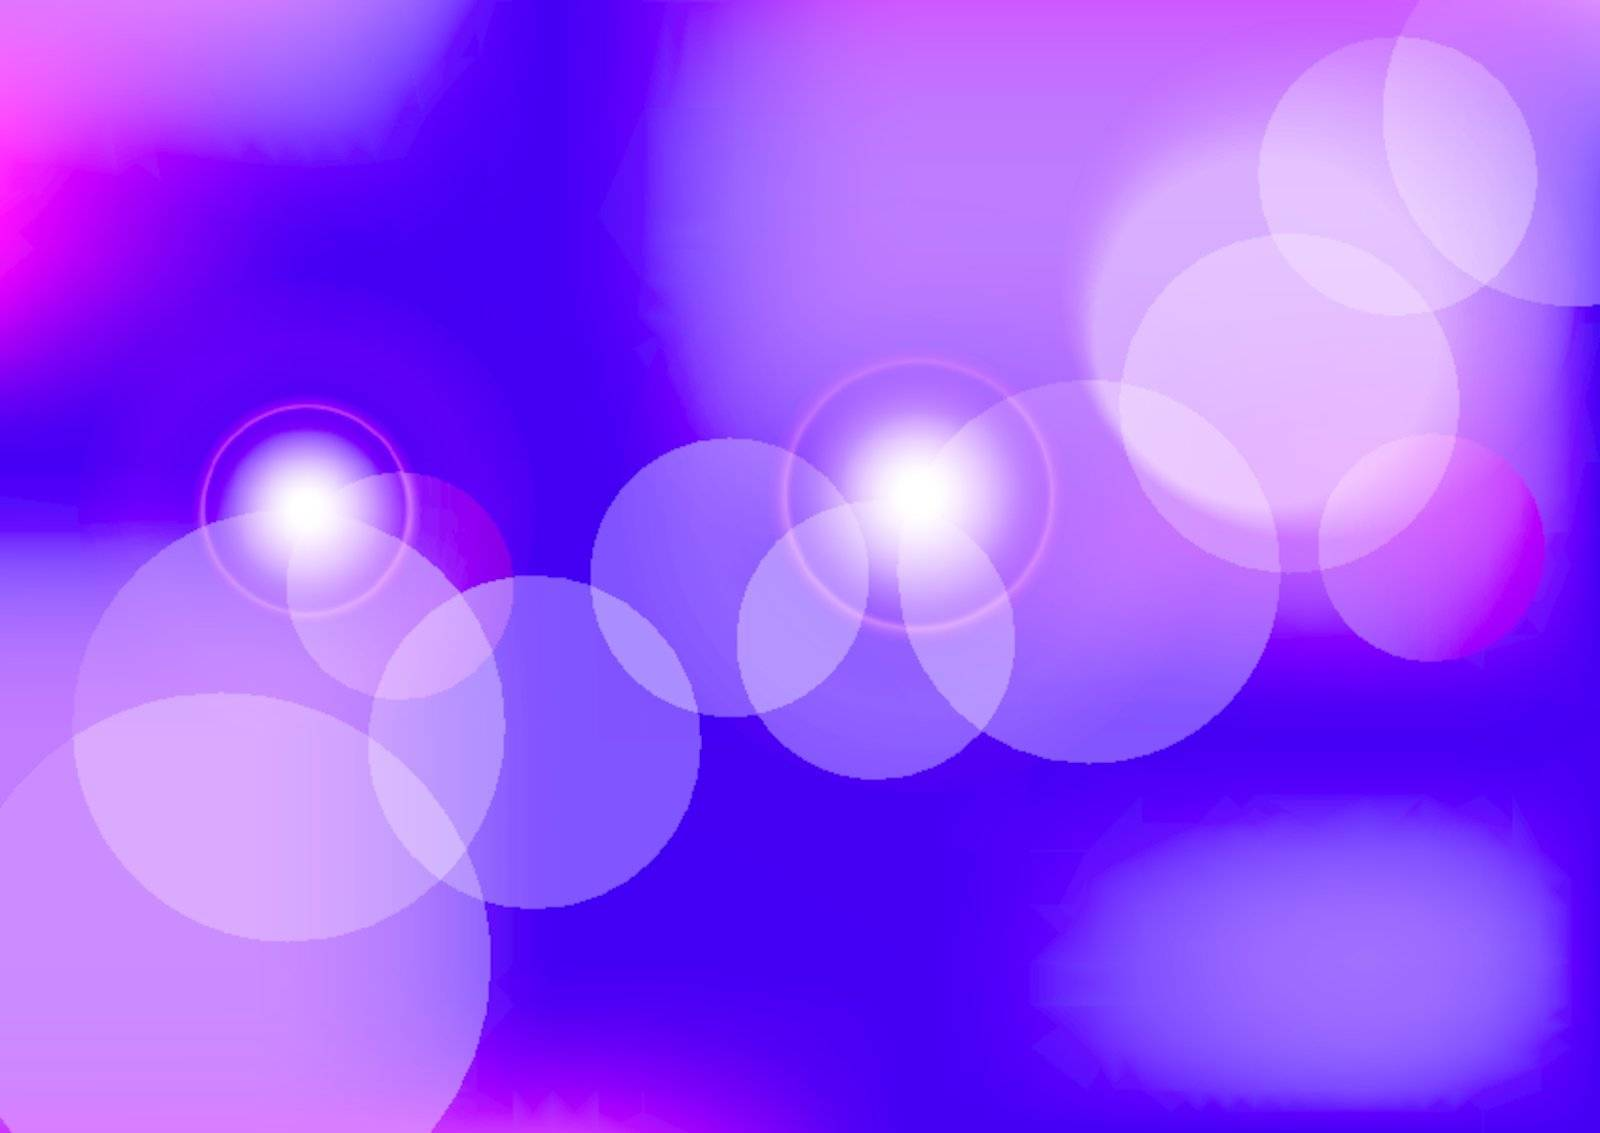 Abstract Background - Bokeh on Violet Background